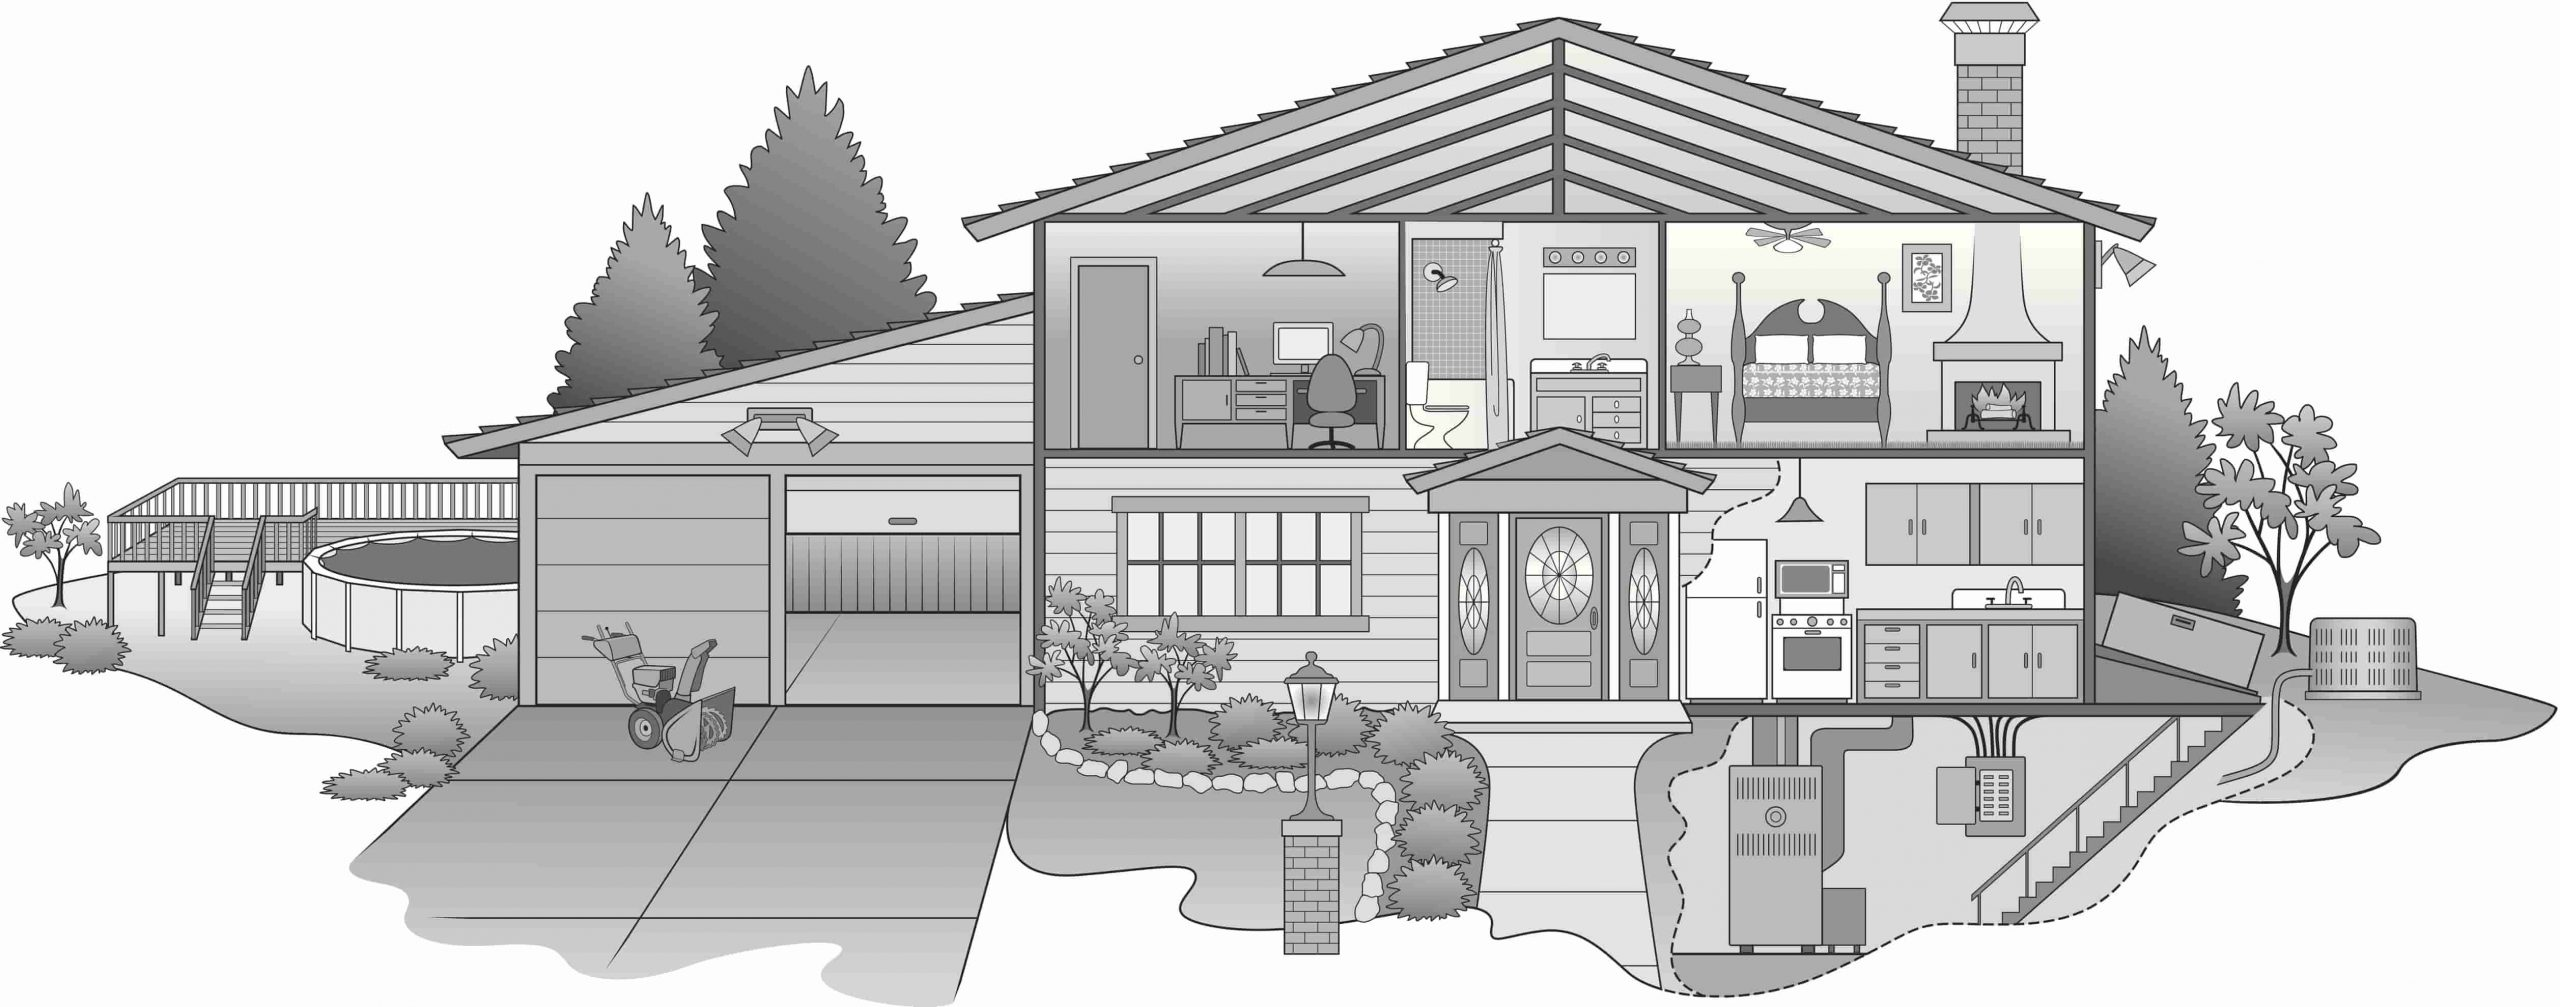 What Are the Ways a Home Envelope Can Work for Your Home?